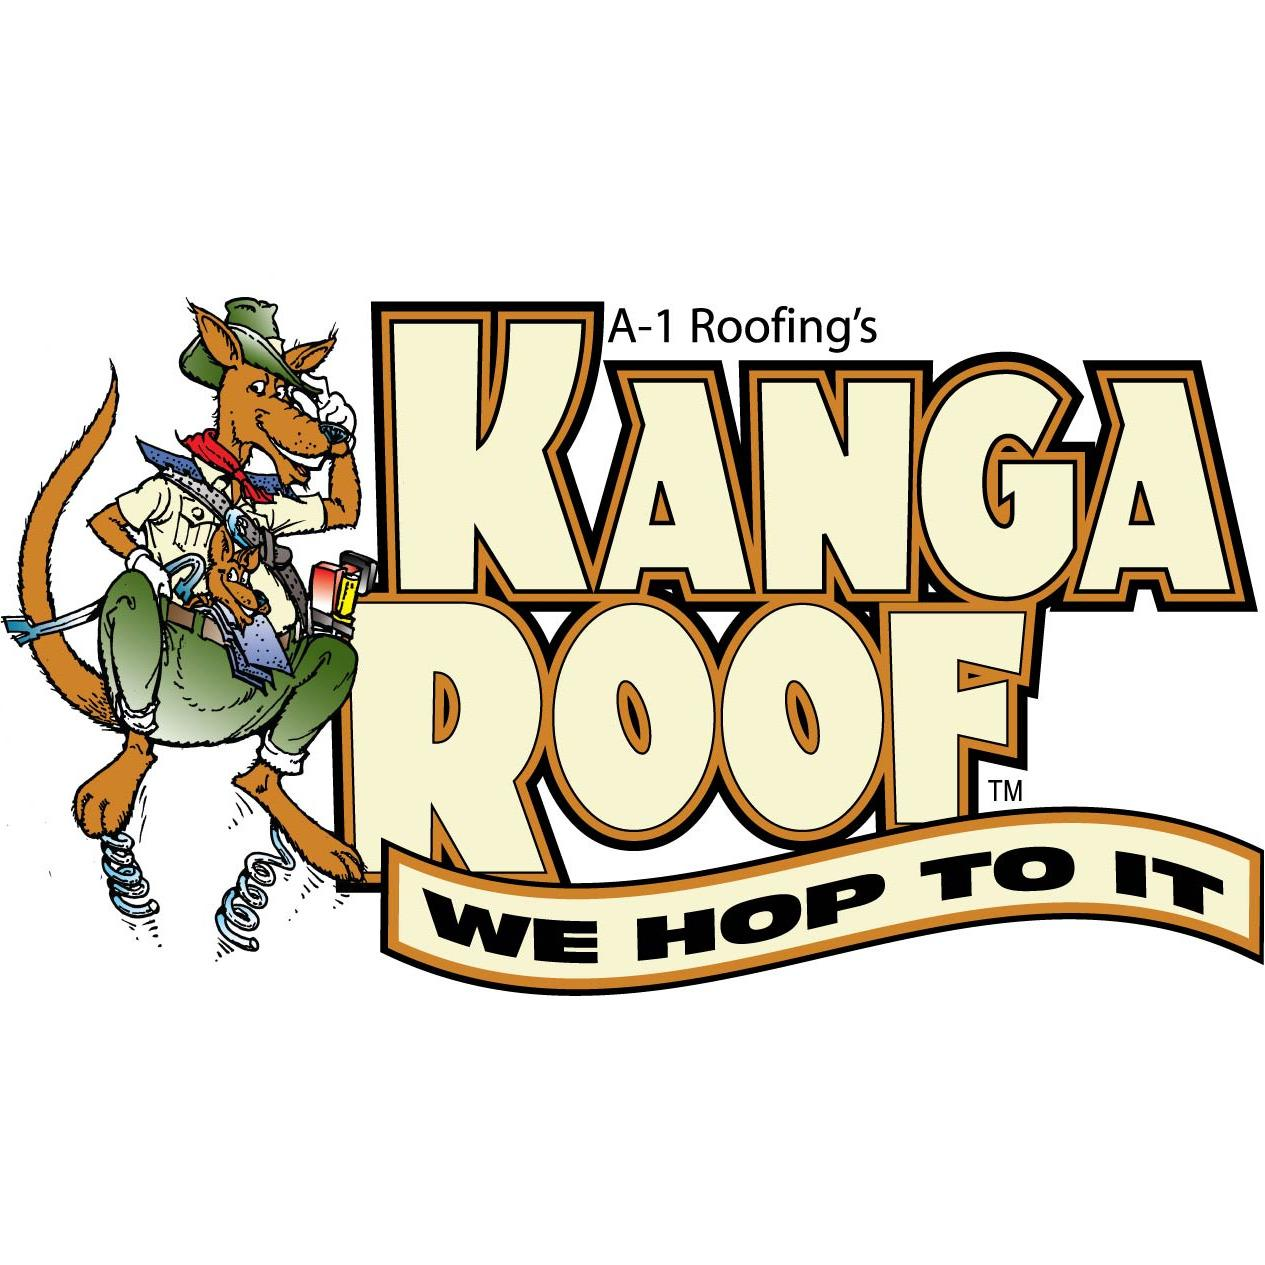 A-1 Roofing's Kanga Roof